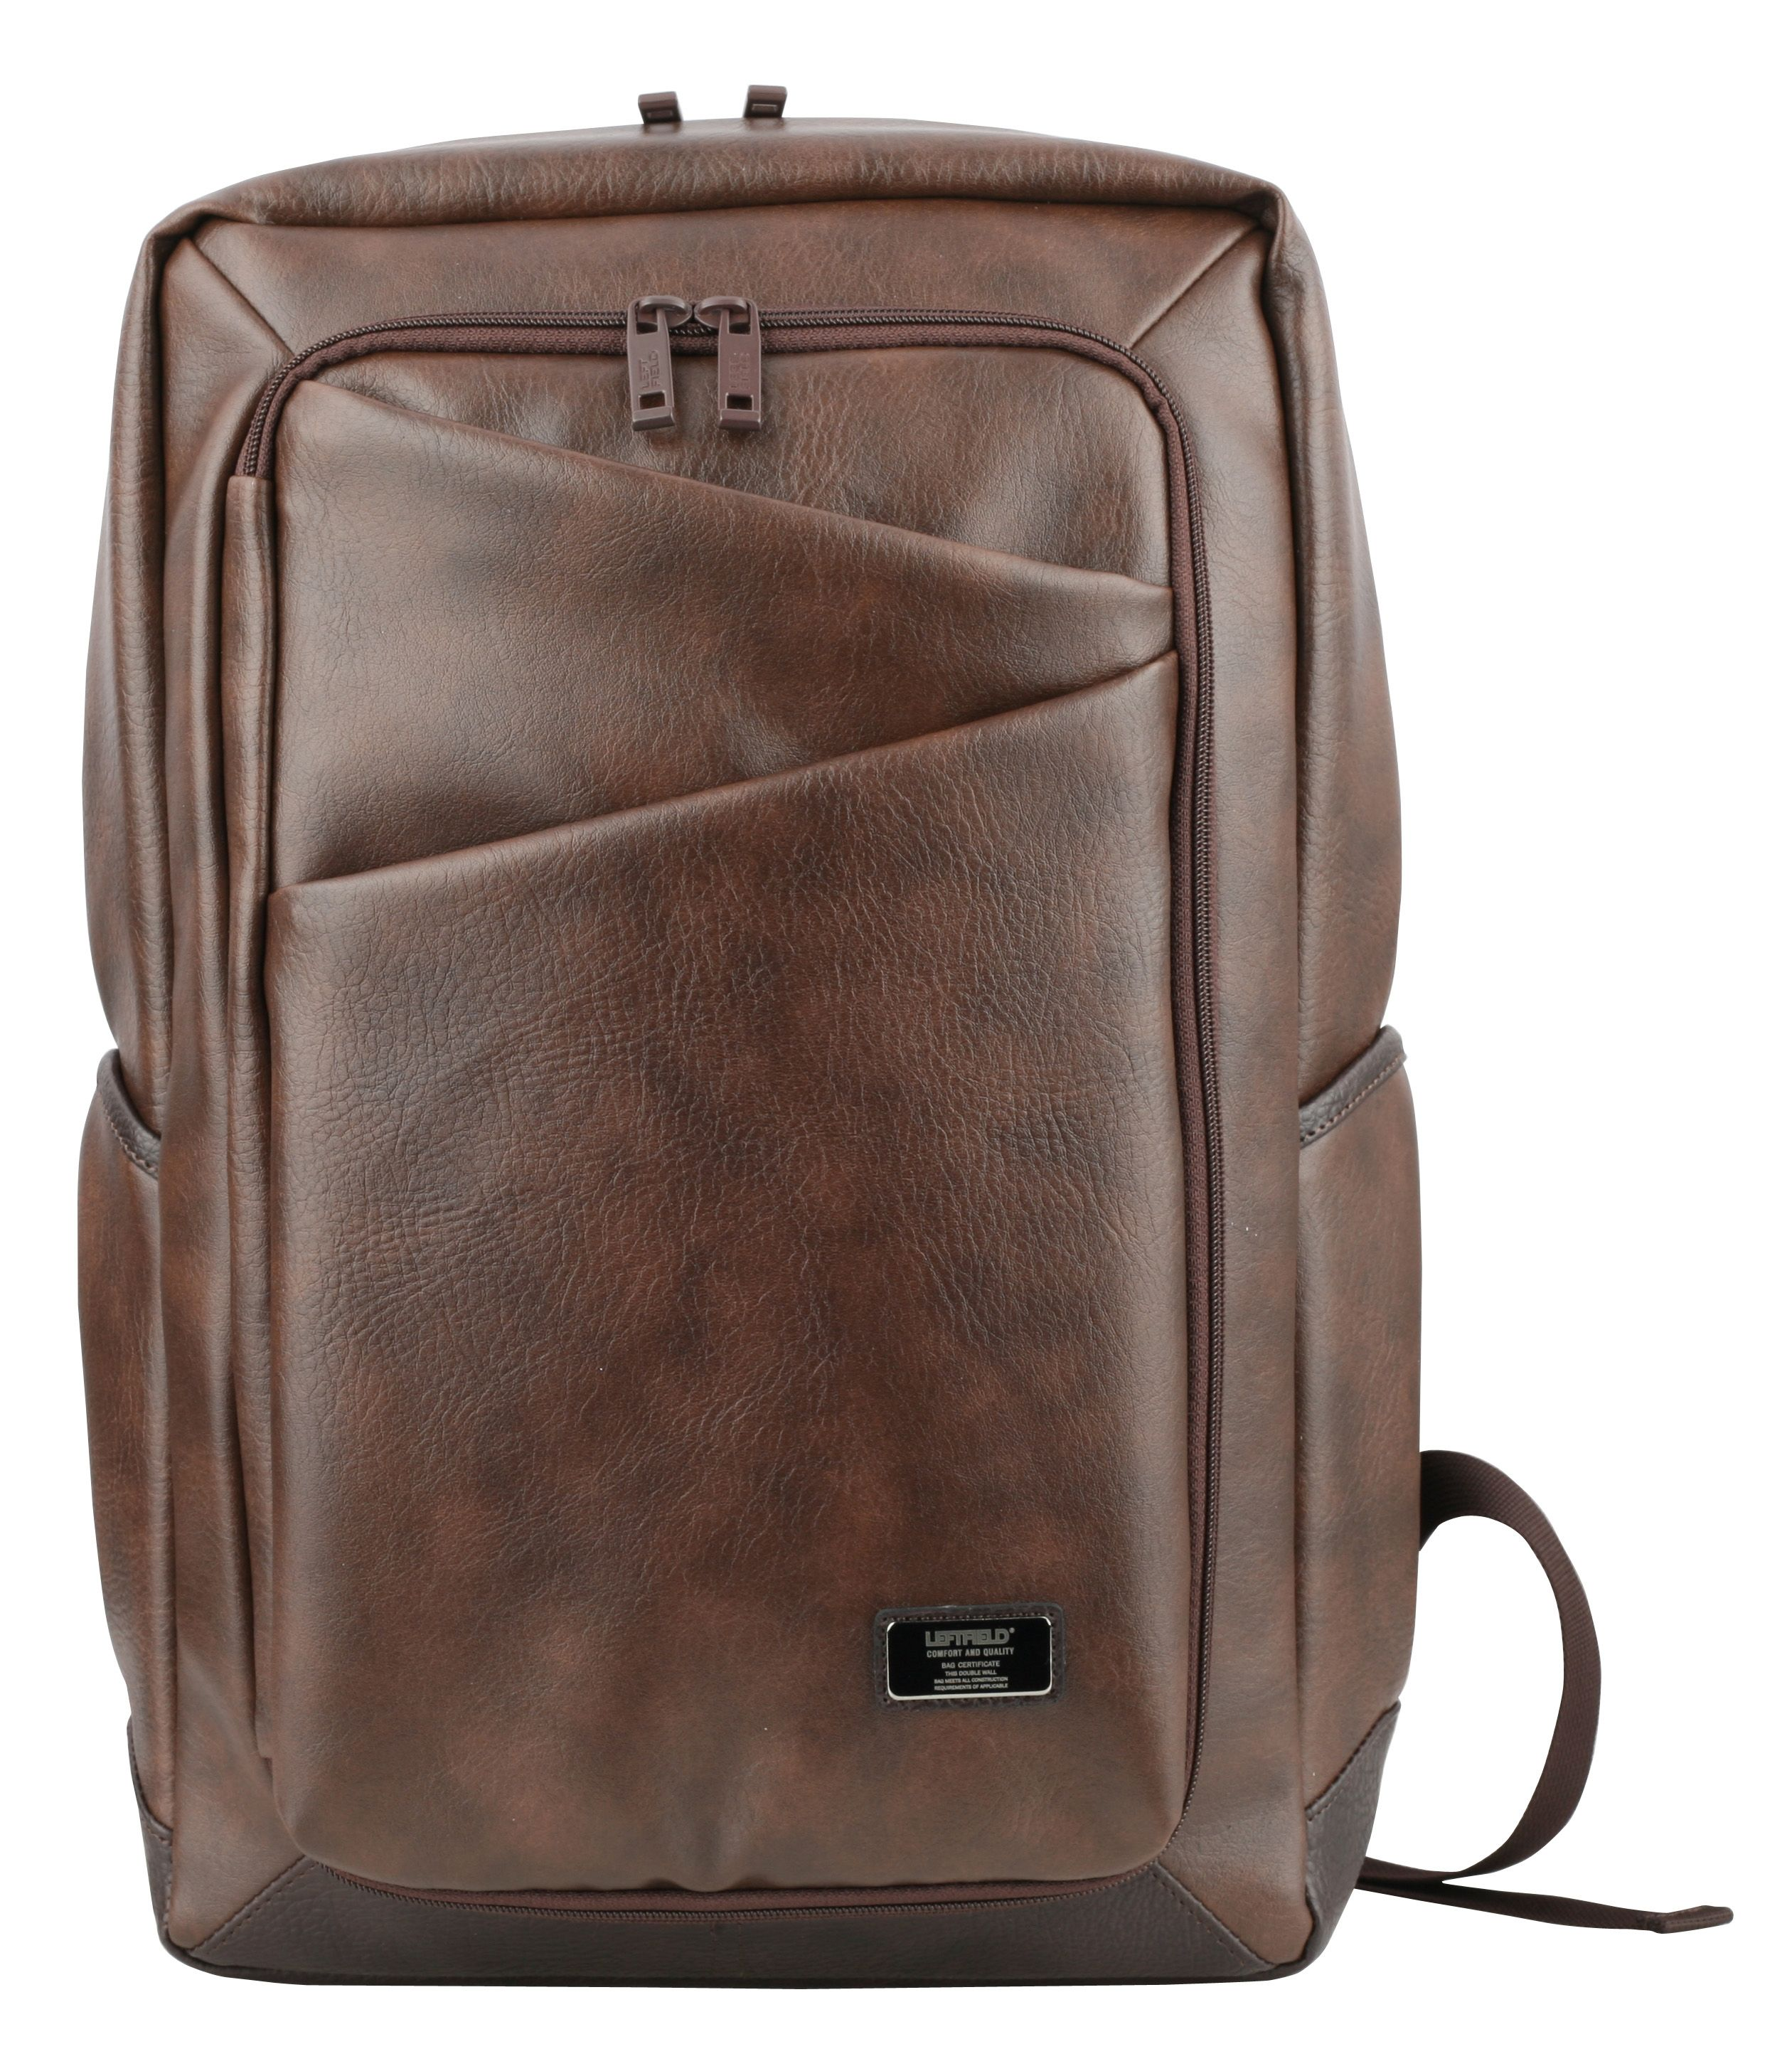 8290b23007 Korean fashion backpacks for men. Vintage style faux leather daypacks for  school